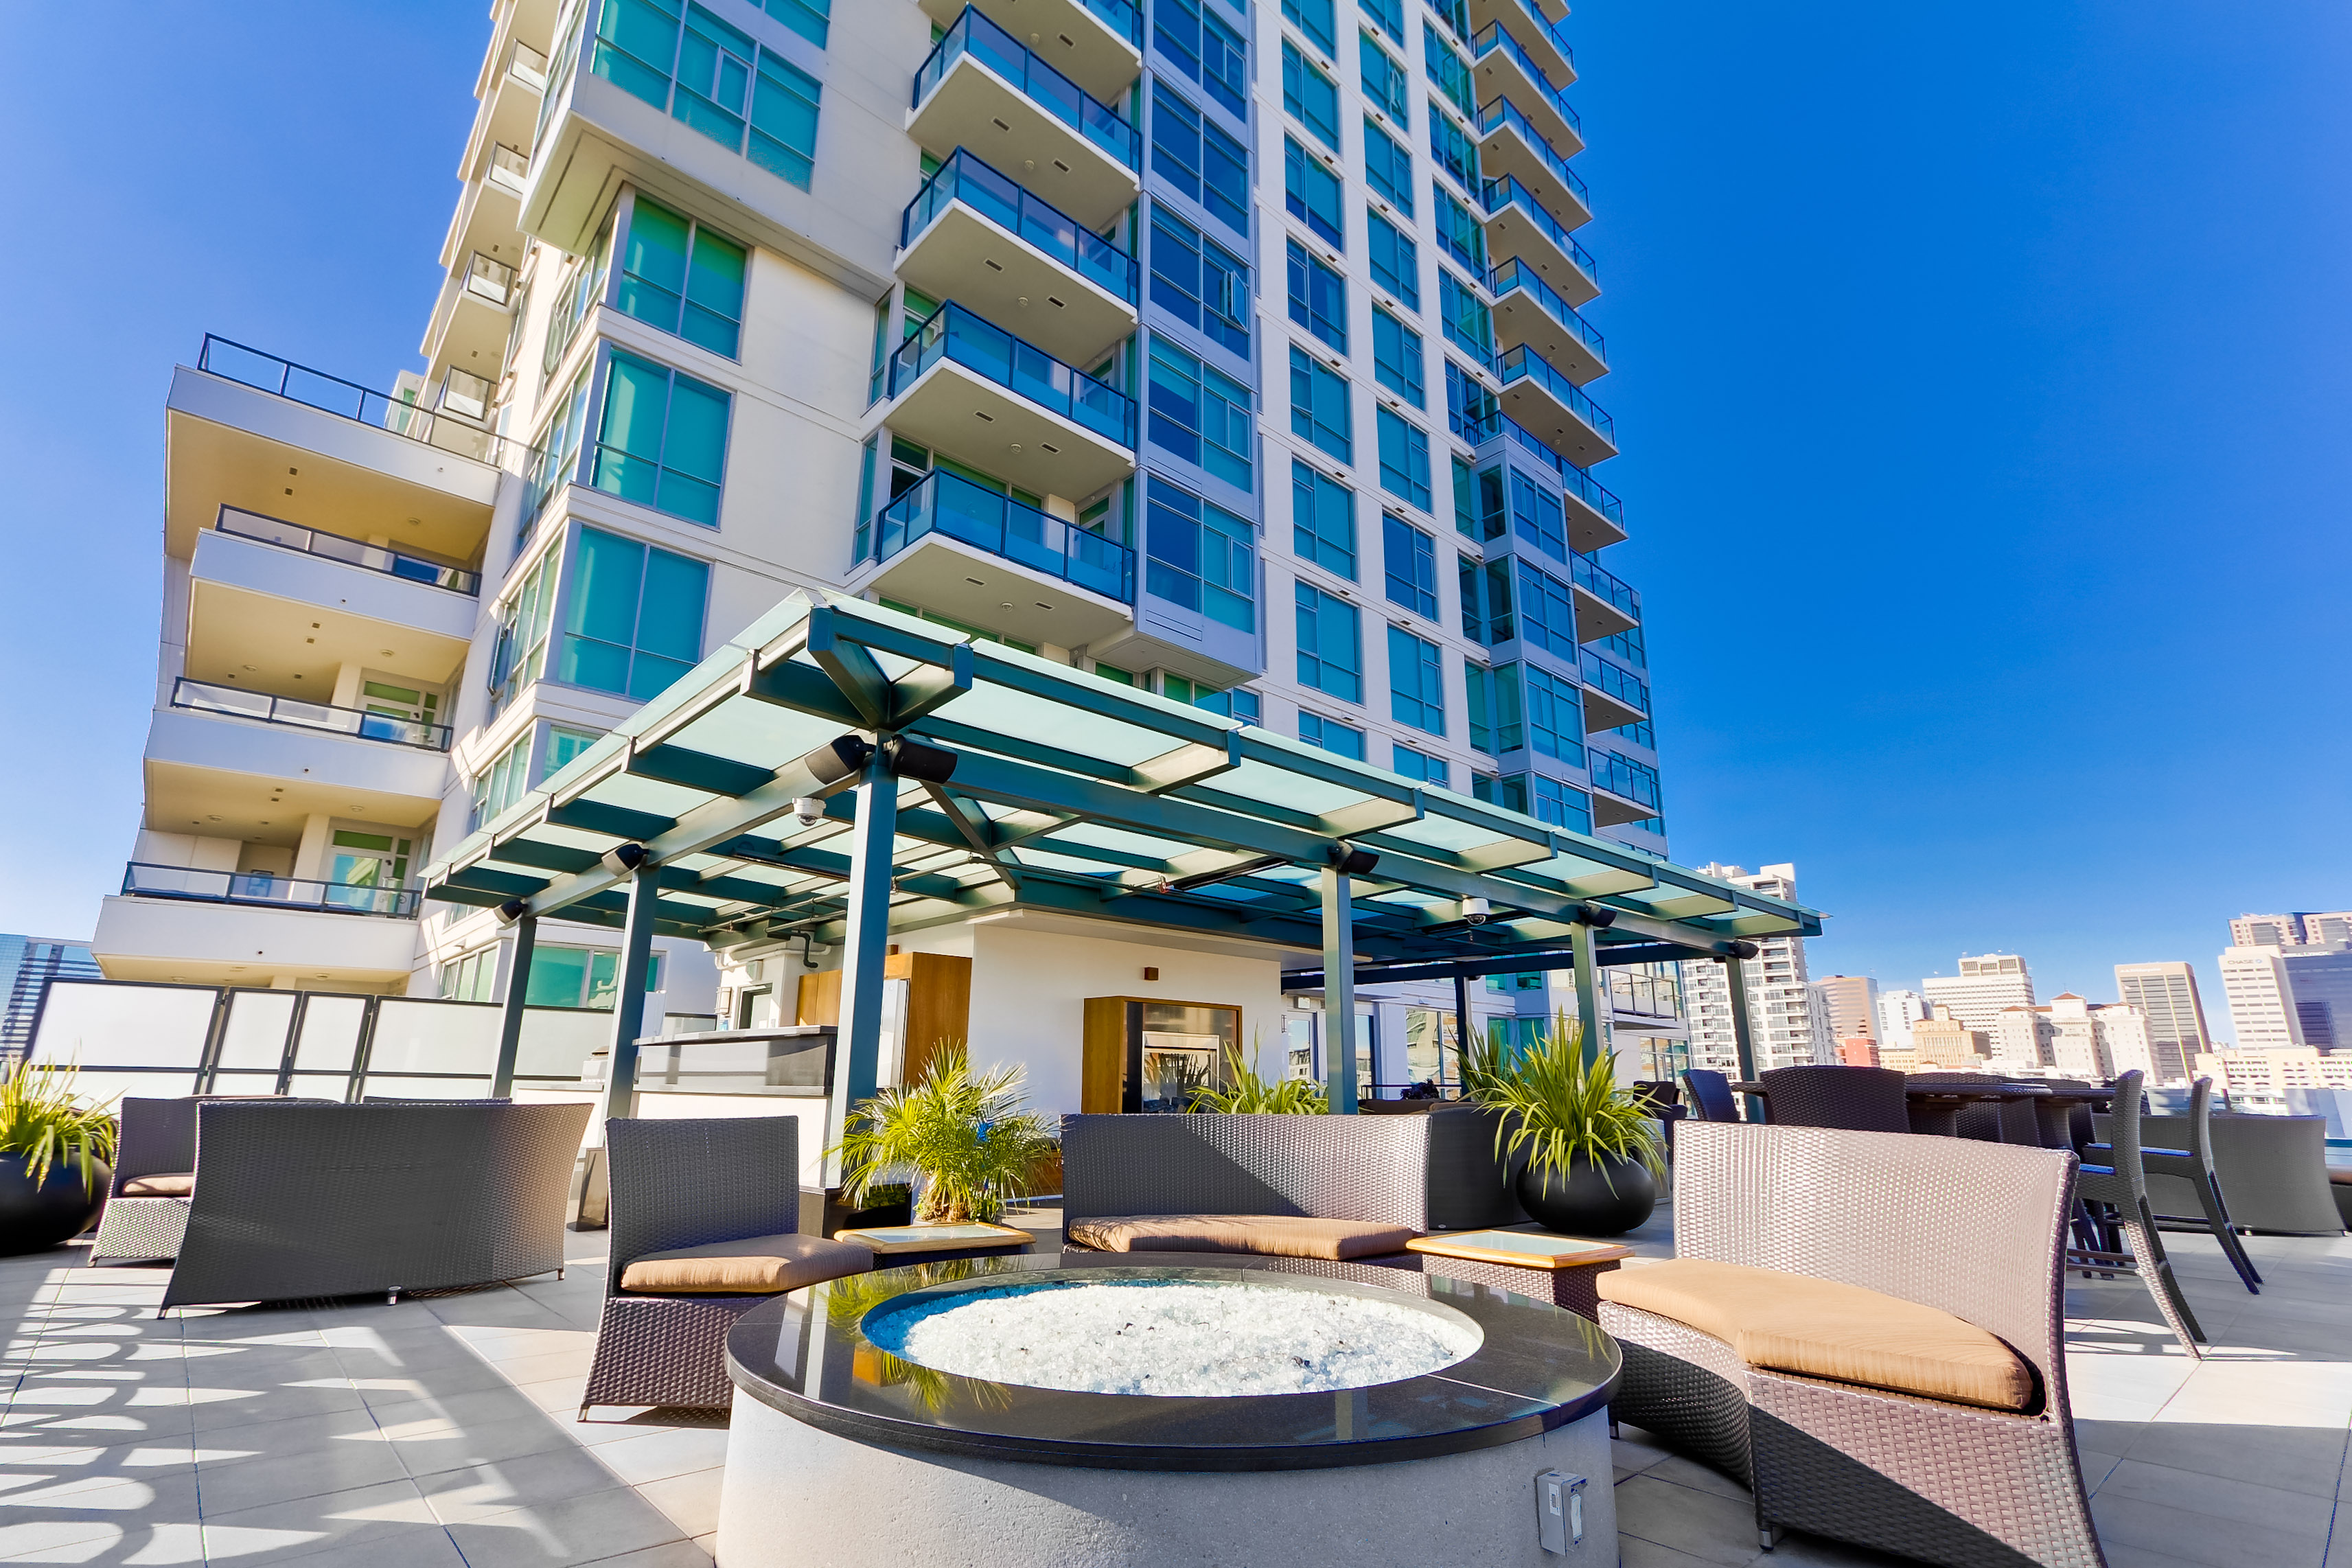 Legend #201 for sale in Downtown San Diego's East Village